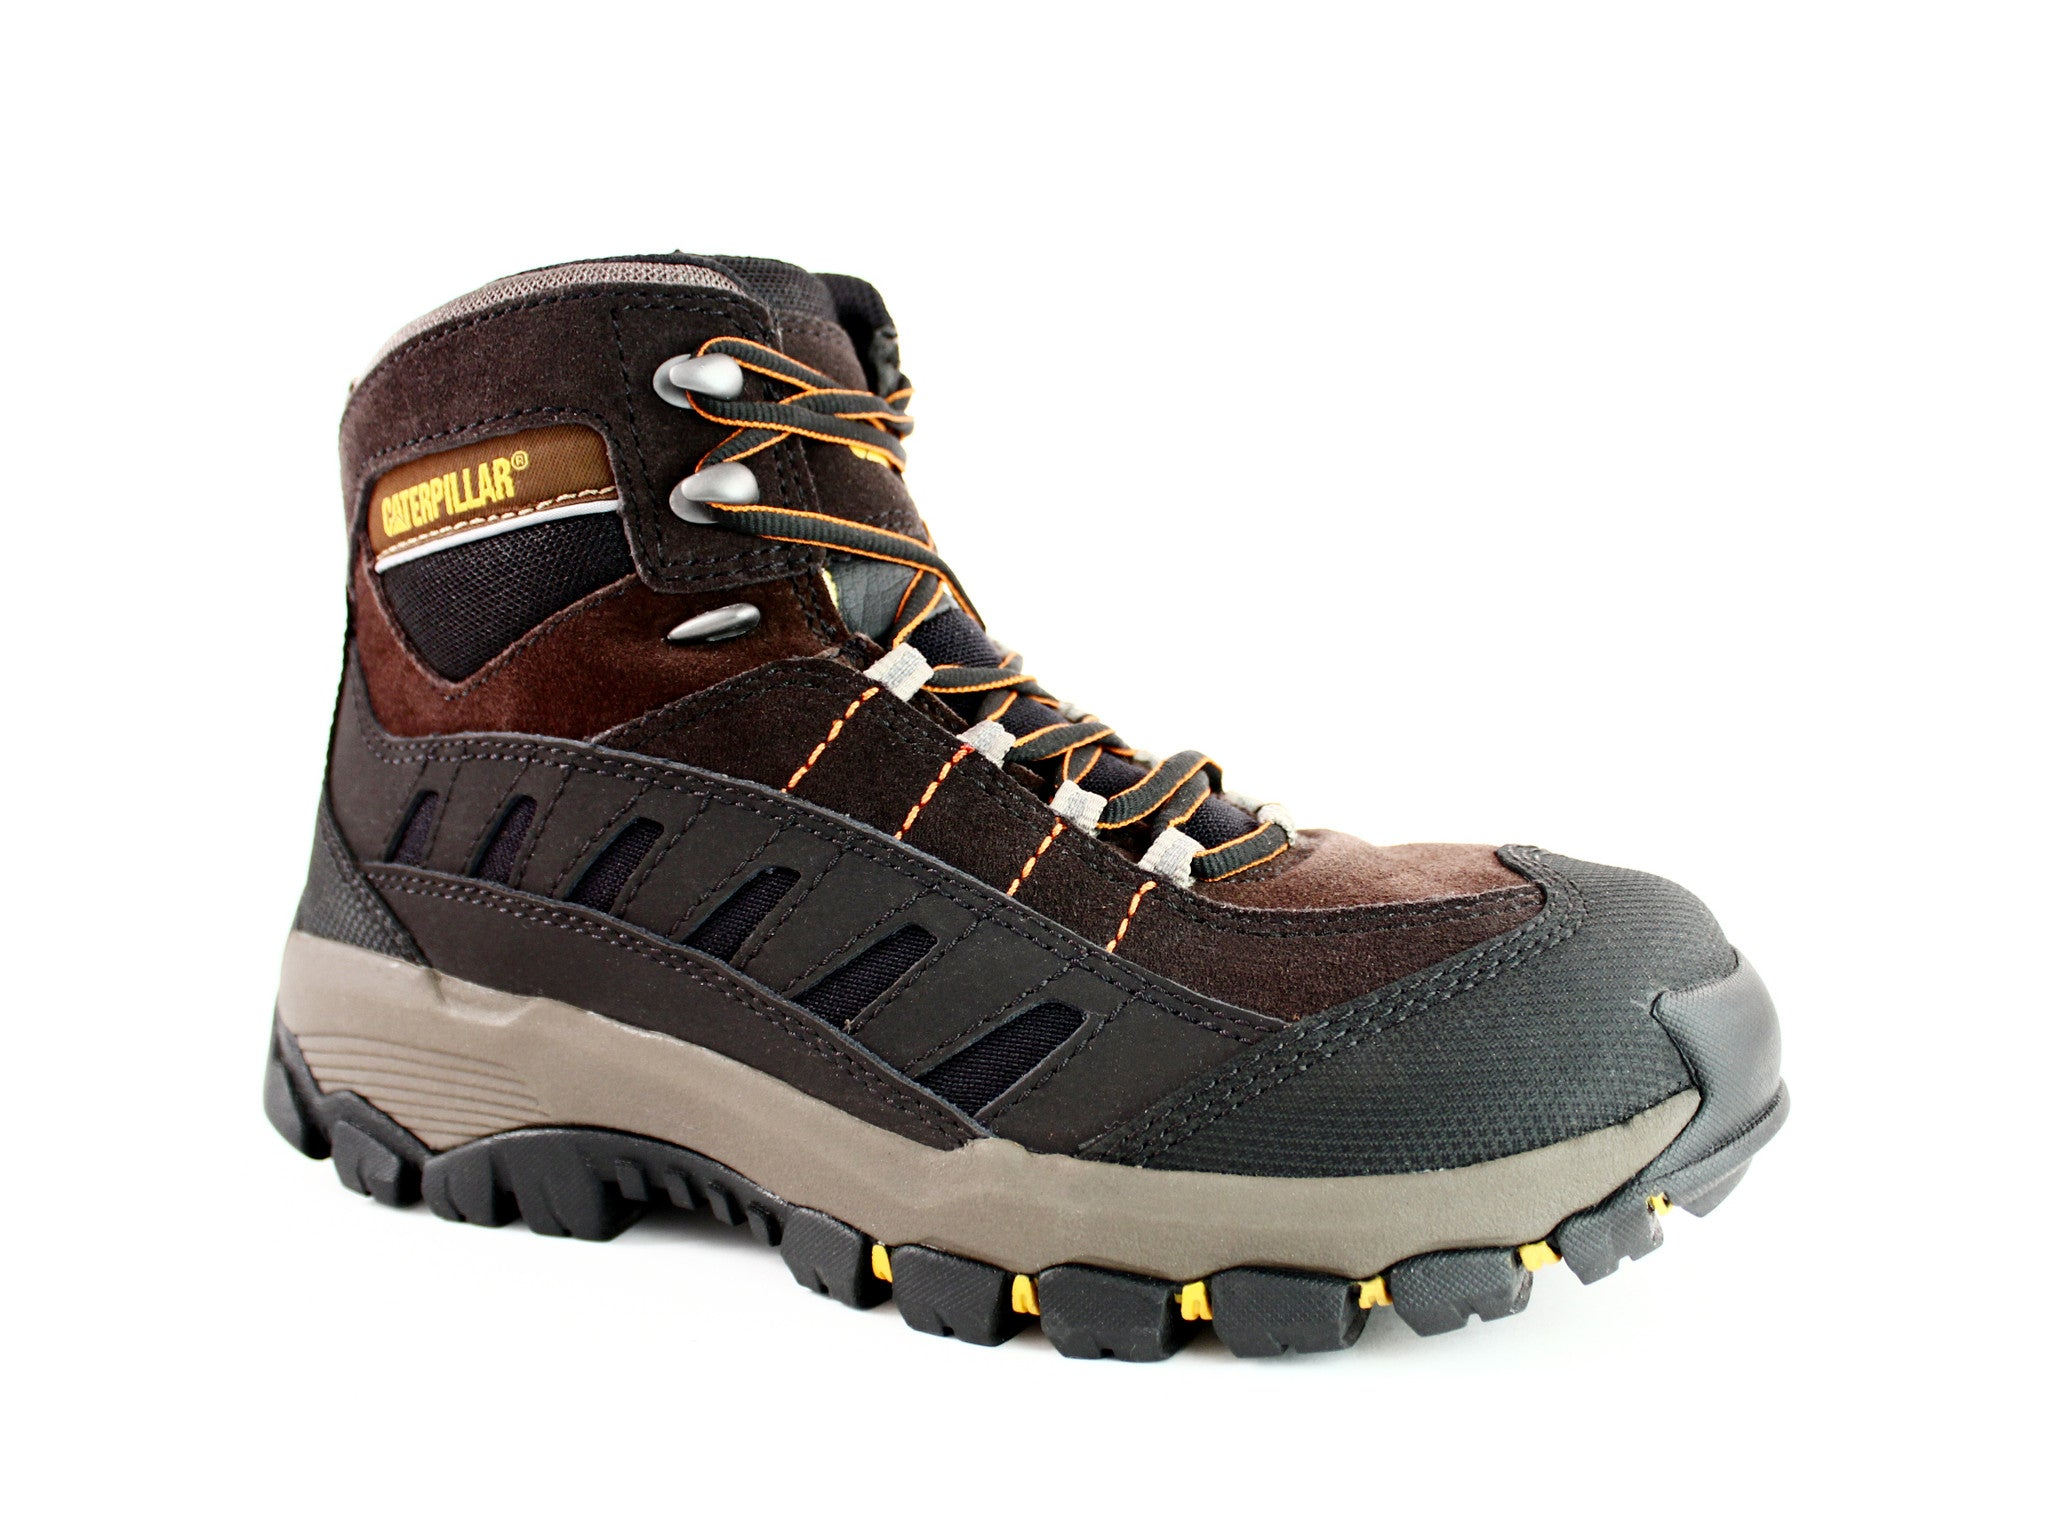 "Caterpillar Sensor HI 6"" Men's Work & Hiking Boots Brown/Black"